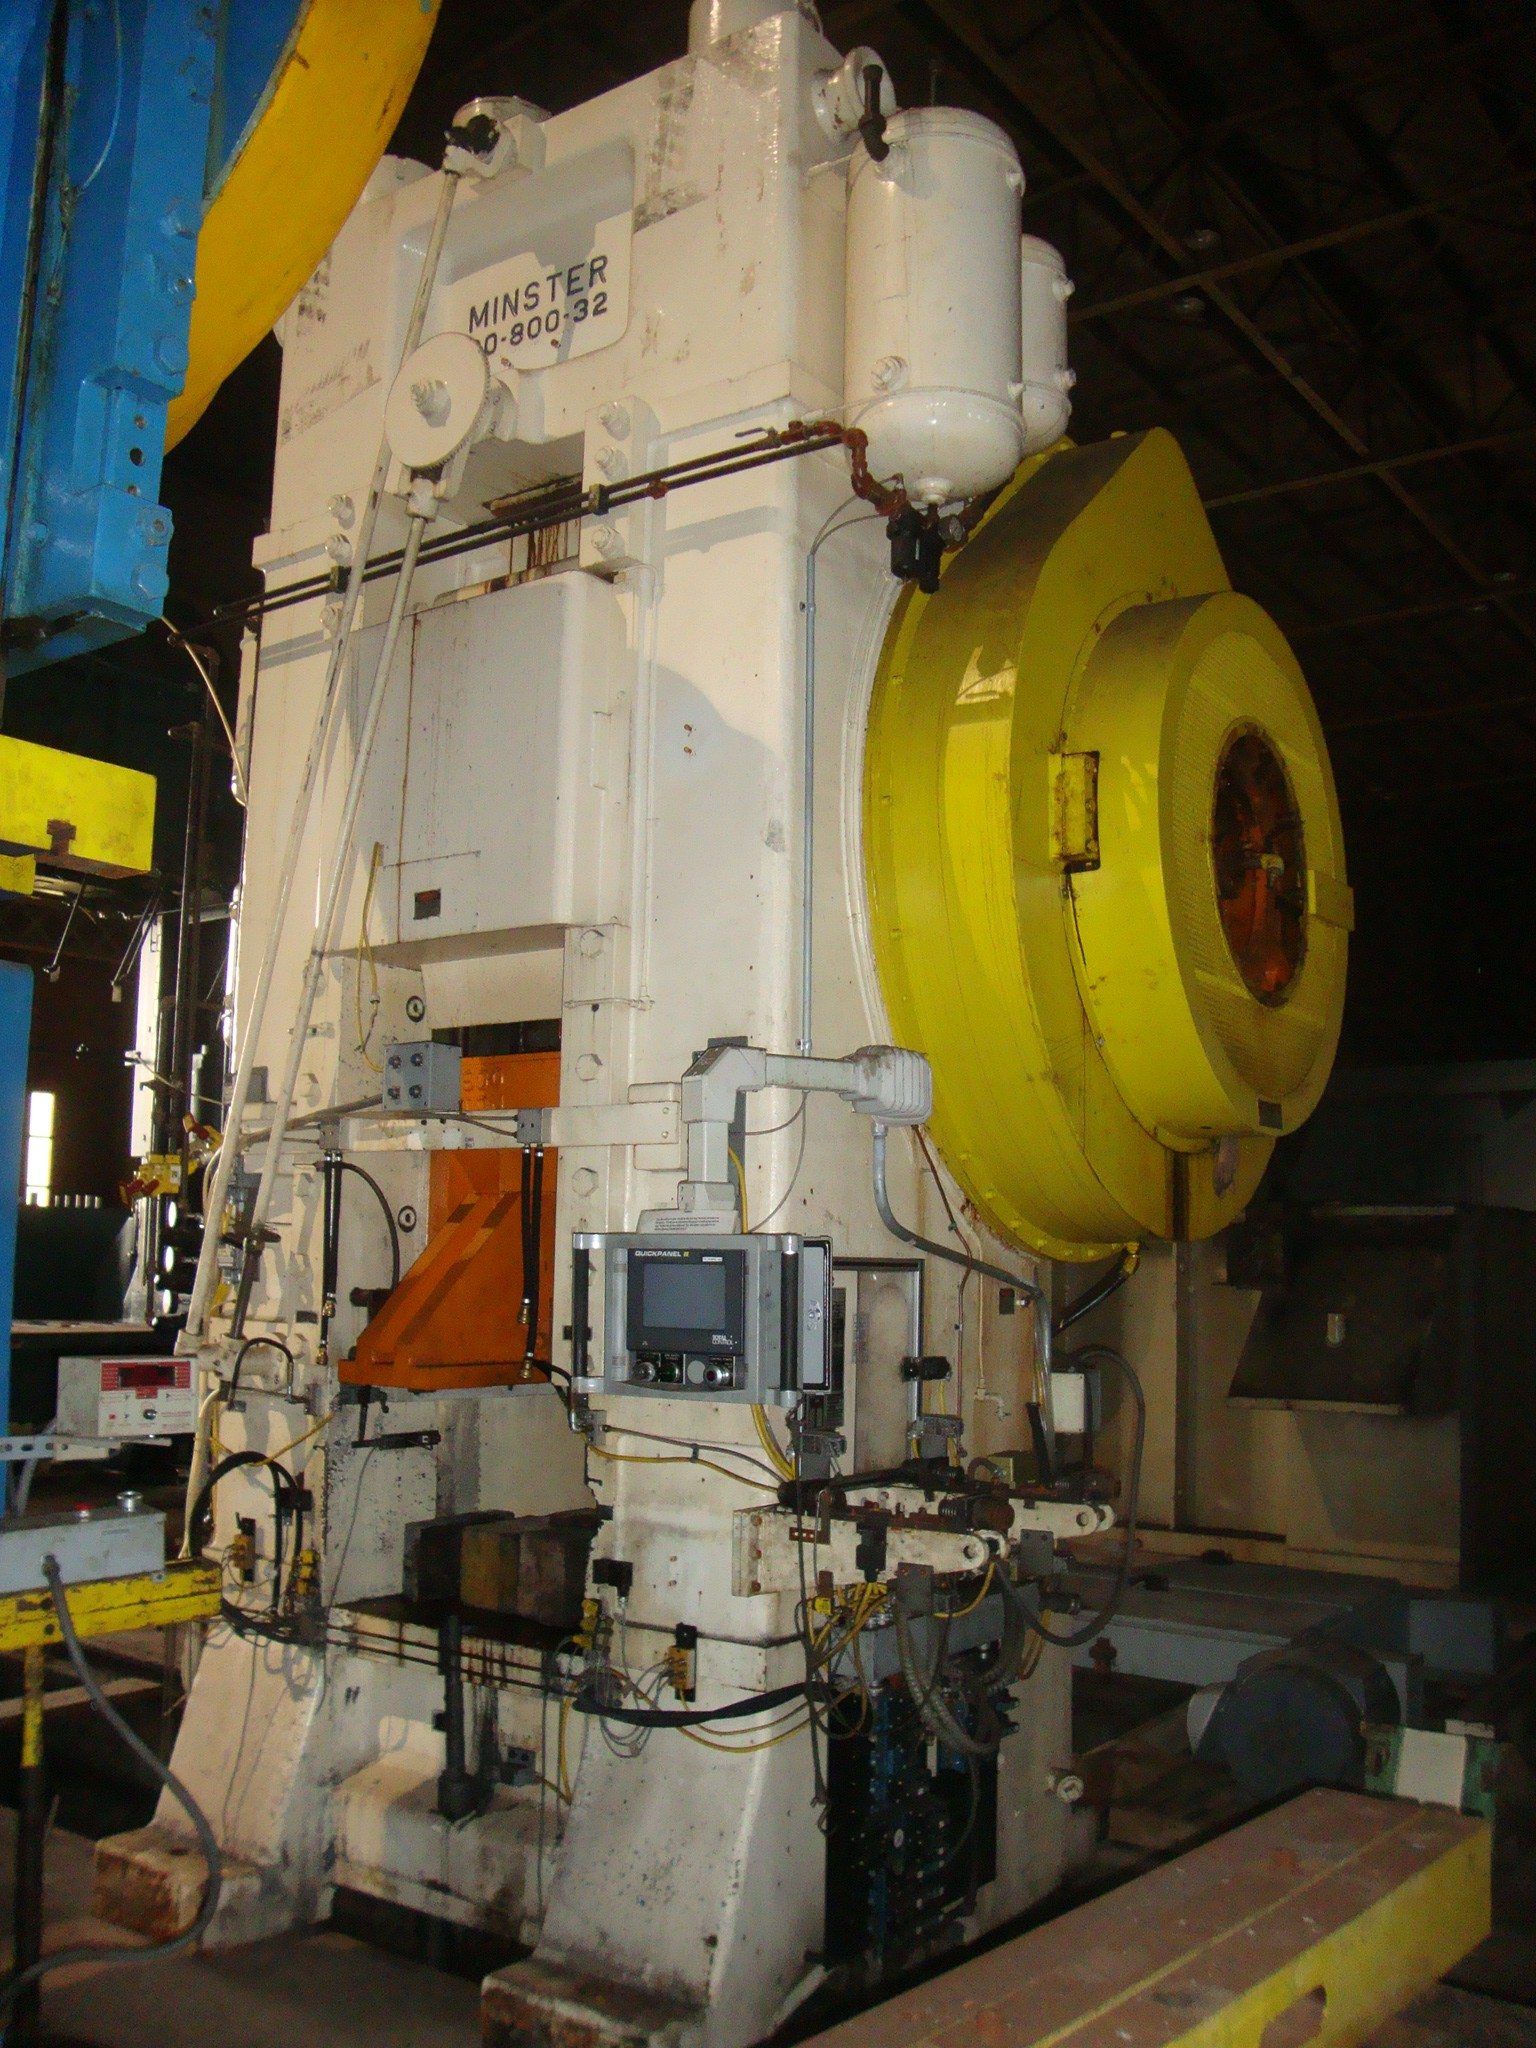 800 Ton Minster Press - Knuckle Joint Metal Stamping Punch